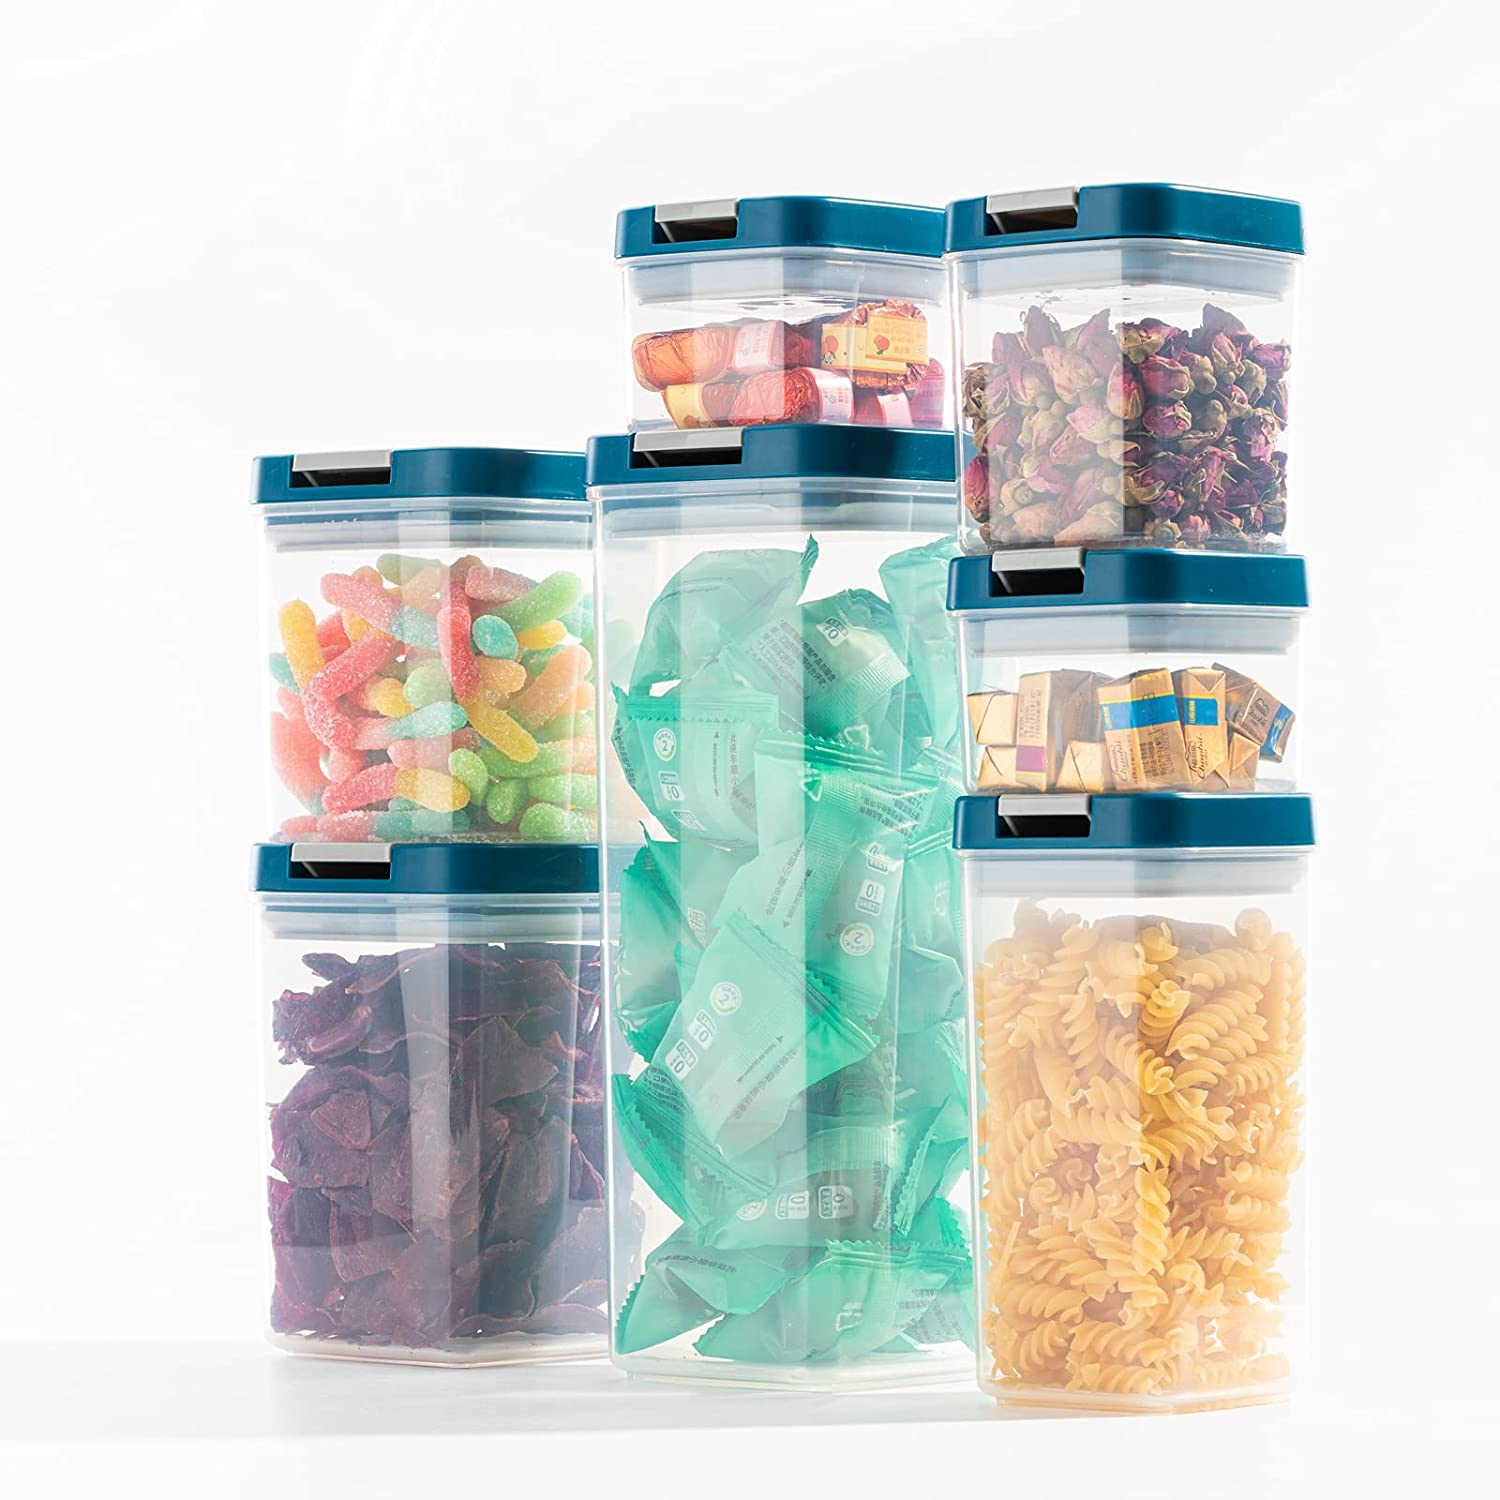 POOCAR Airtight Food Storage Containers Set 100% Airtig Ranking integrated 1st place NEW before selling PCS 7 -